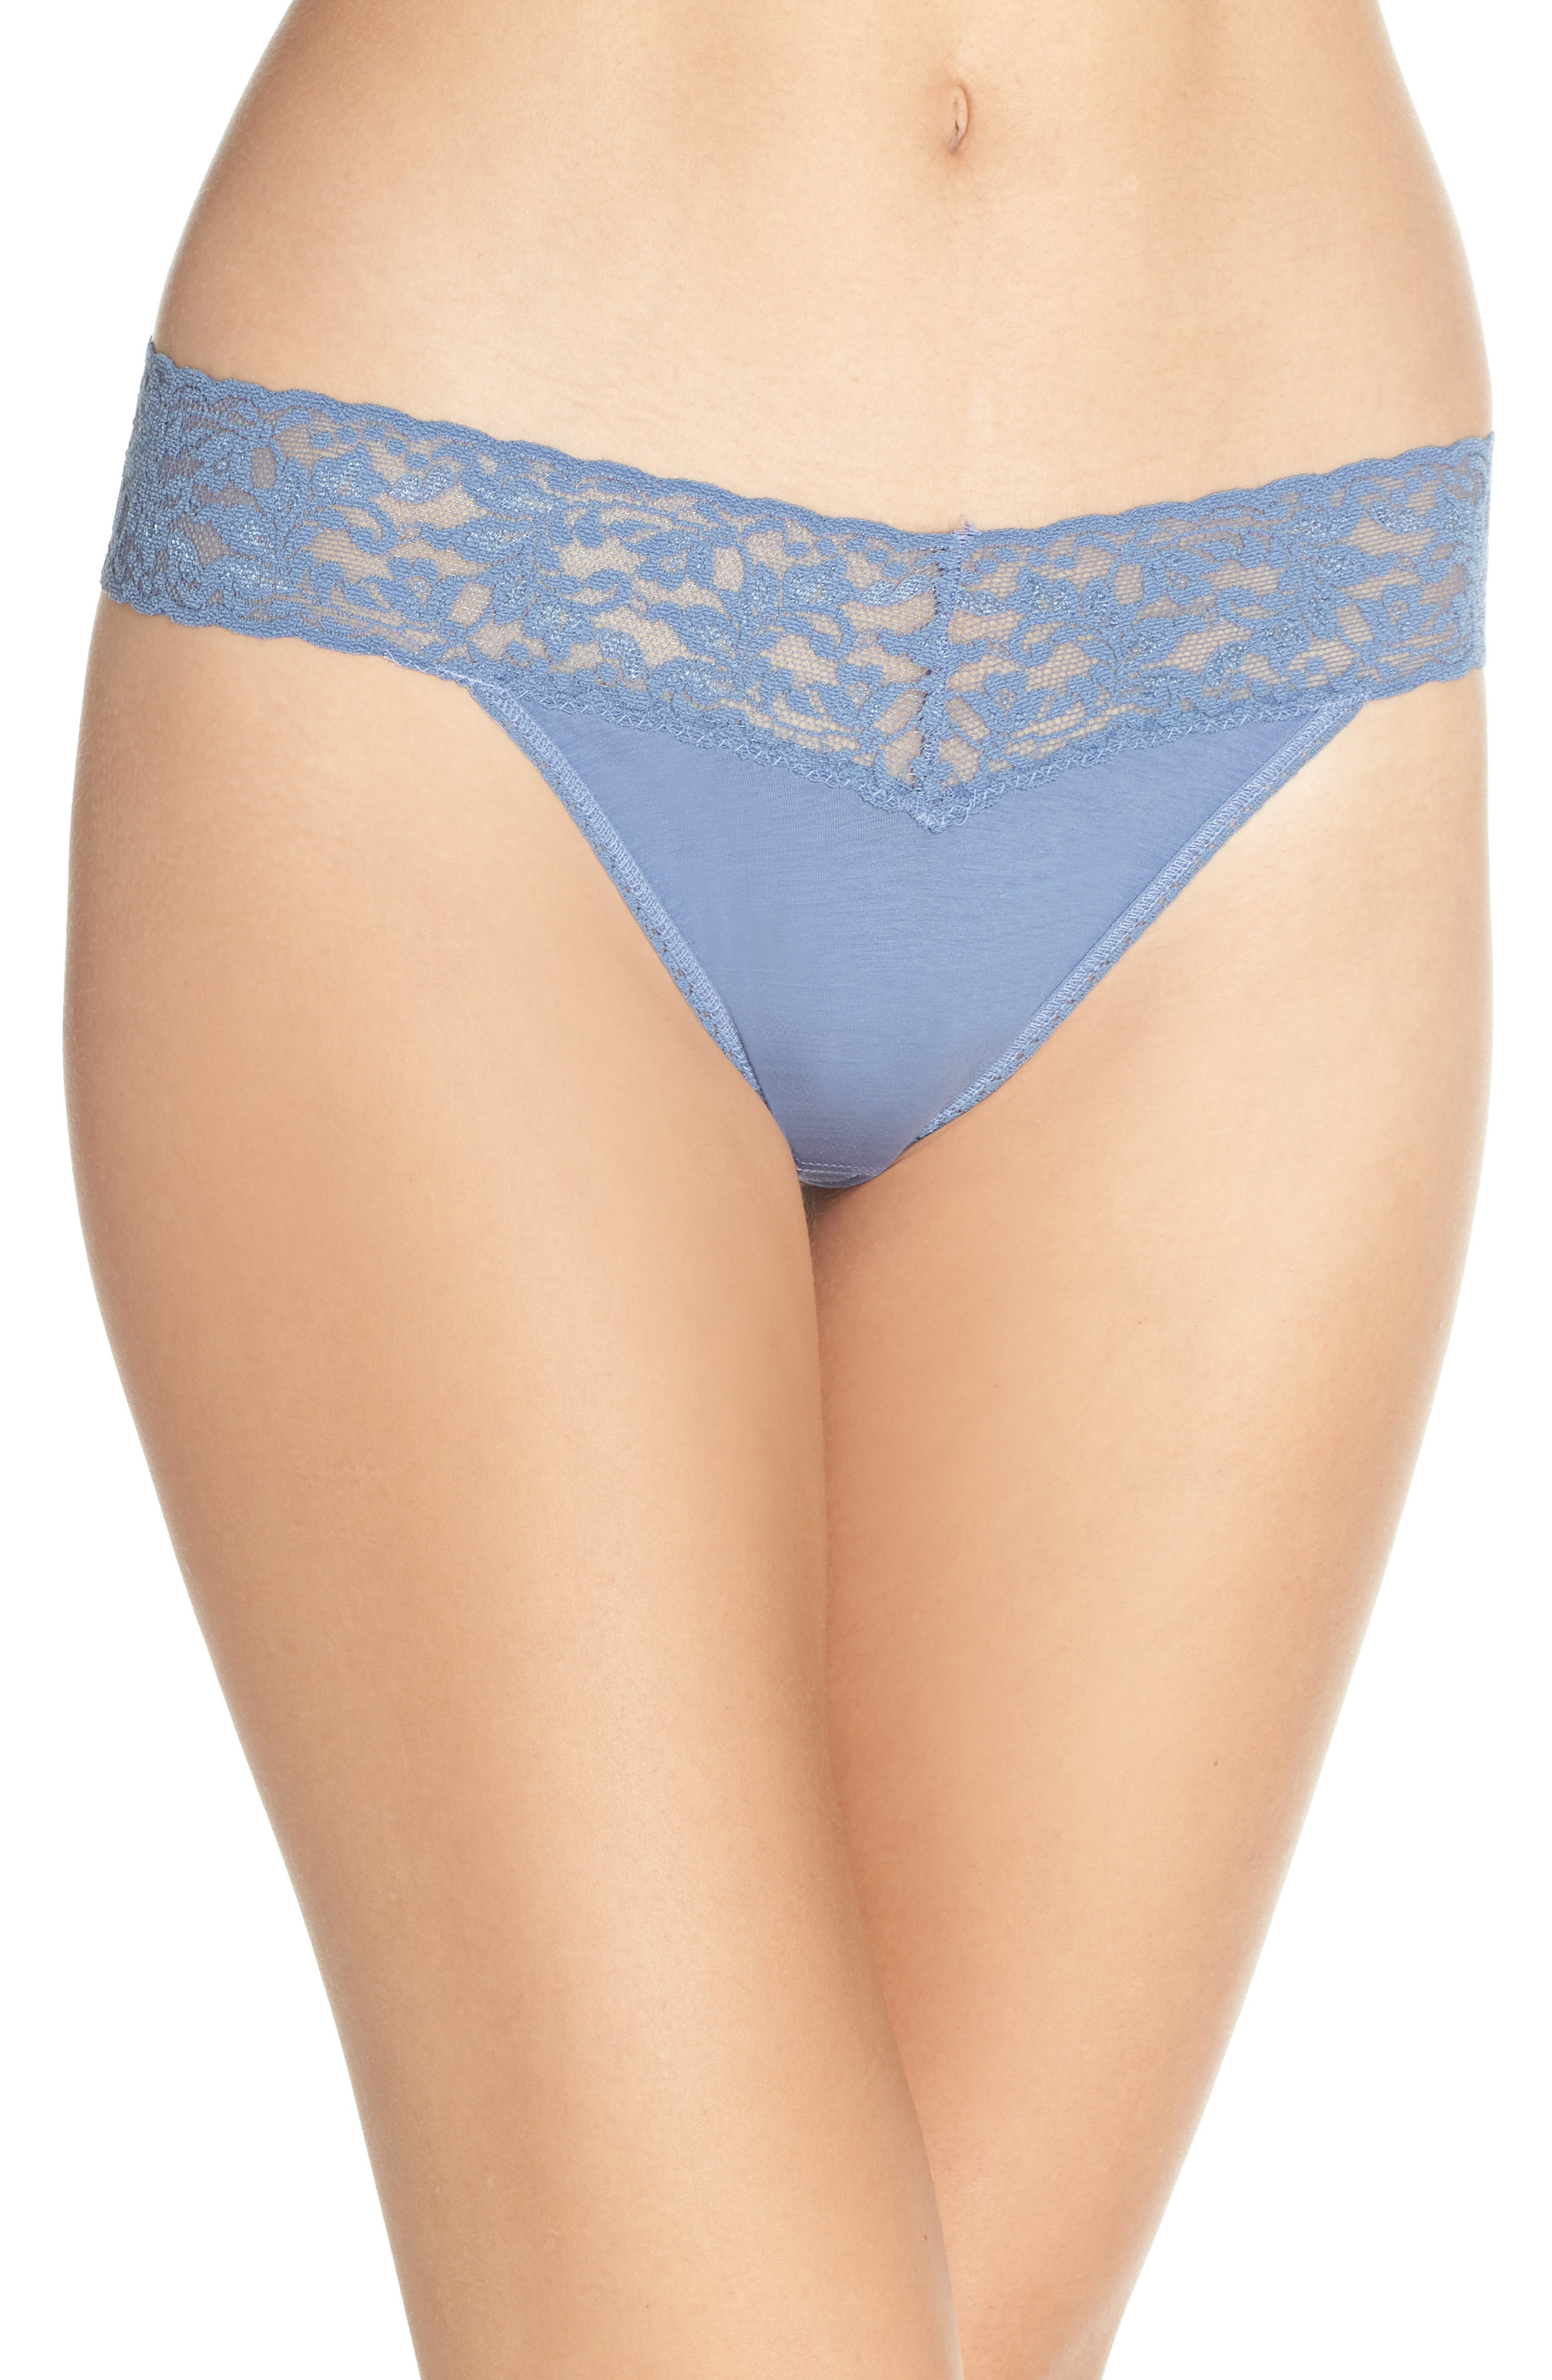 550a357926c7 Hanky Panky Original Rise Thong in 2019 | Products | Nordstrom, Lace ...